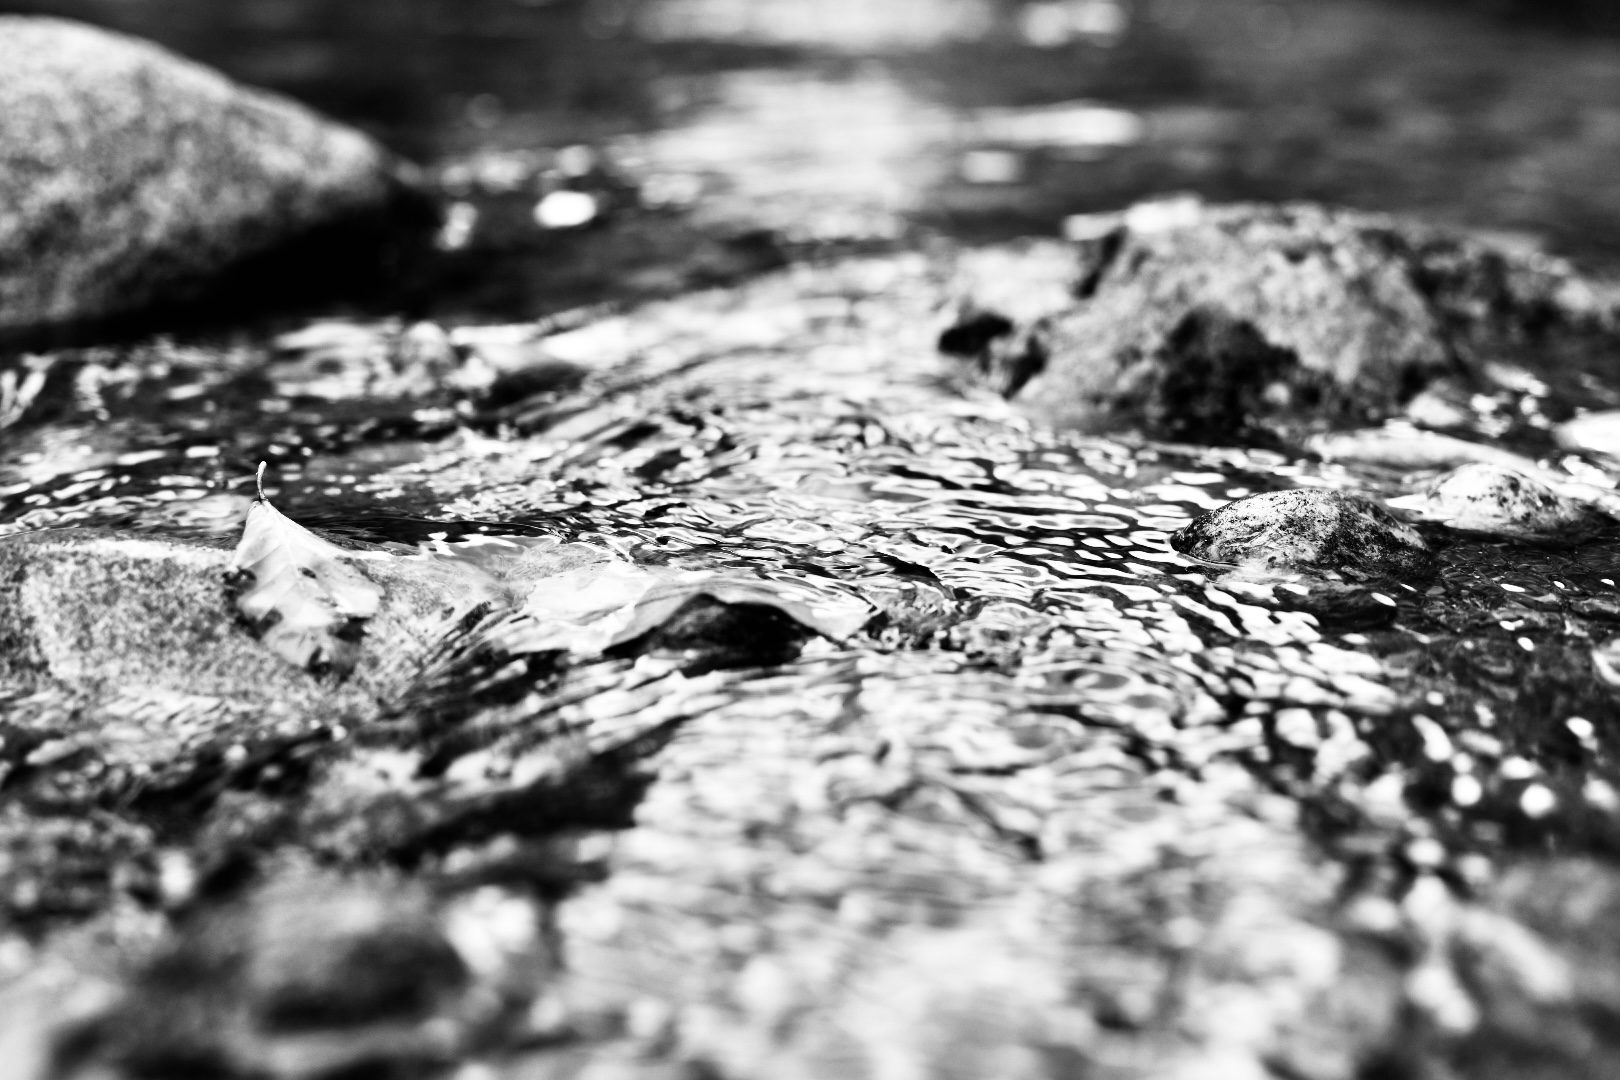 Light reflecting off of river water in black and white. 2021. Taryn Okesson. Digital Photography. White Mountain National Forest, New Hampshire.